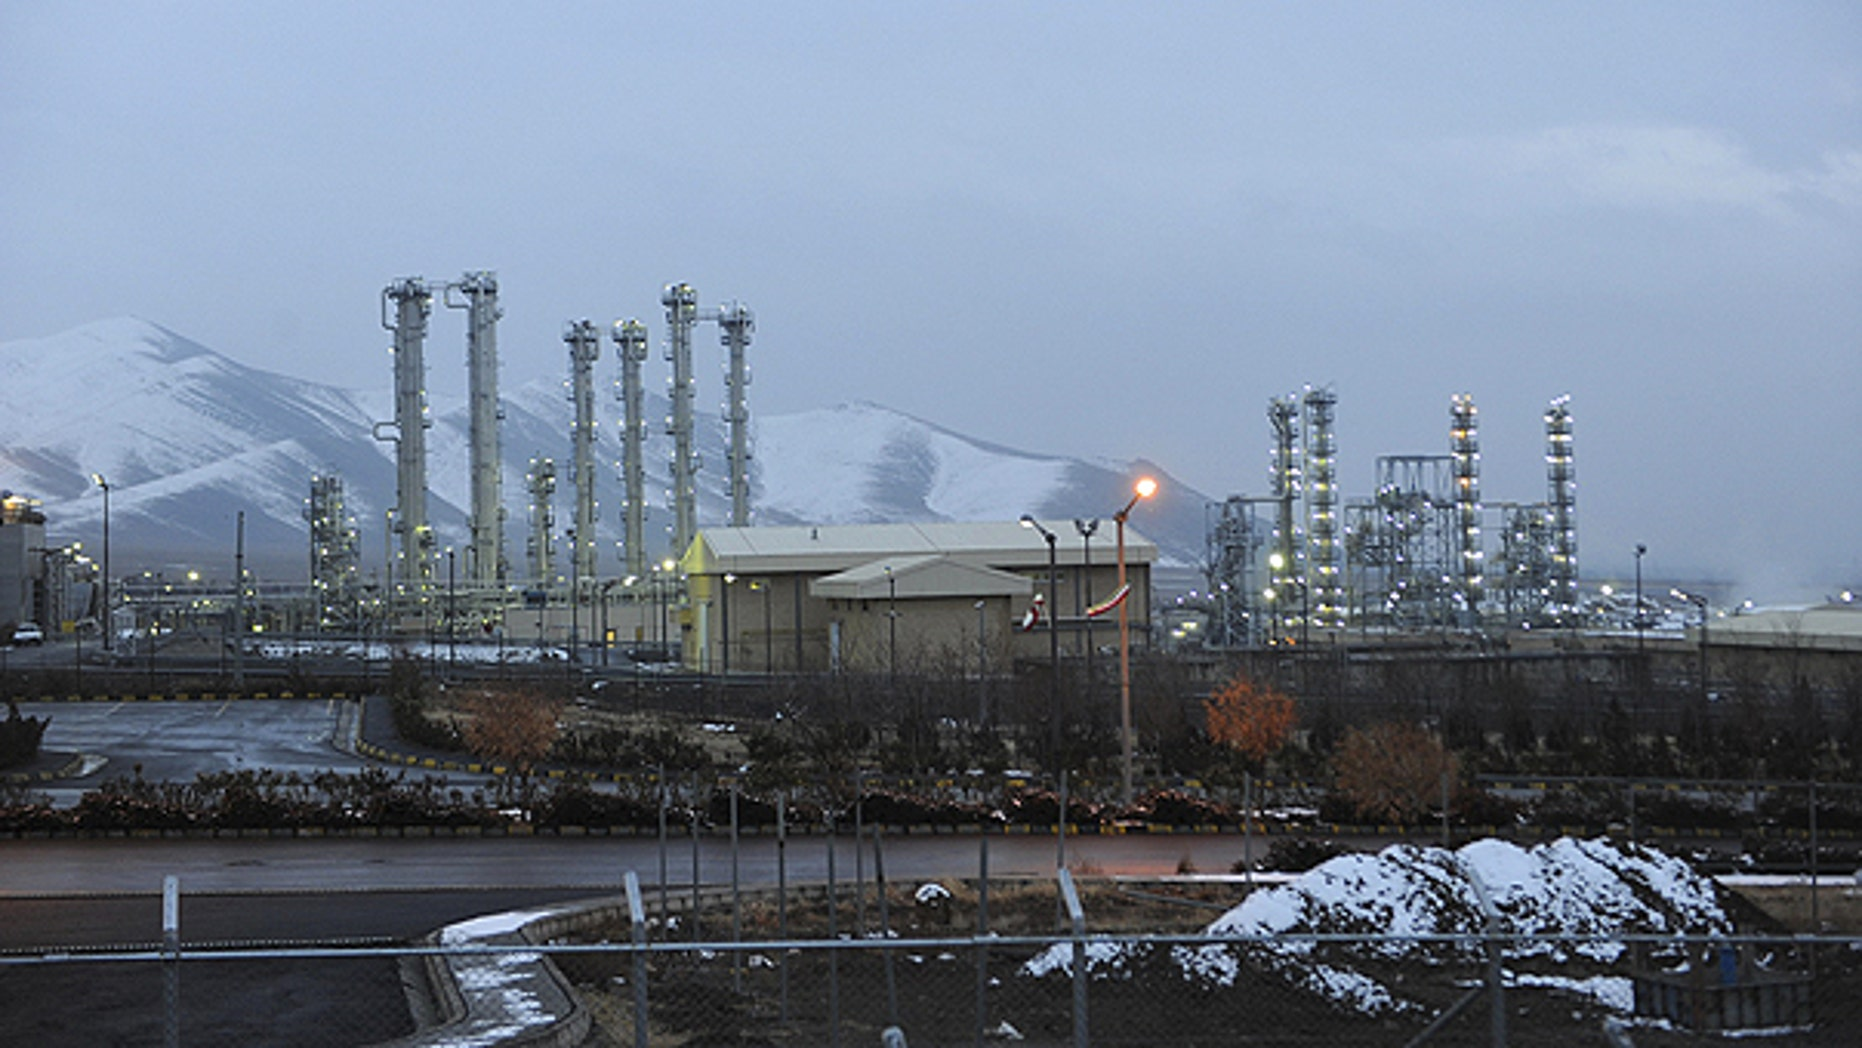 Jan. 15: A view of Iran's heavy water nuclear facilities is seen, near the central city of Arak.